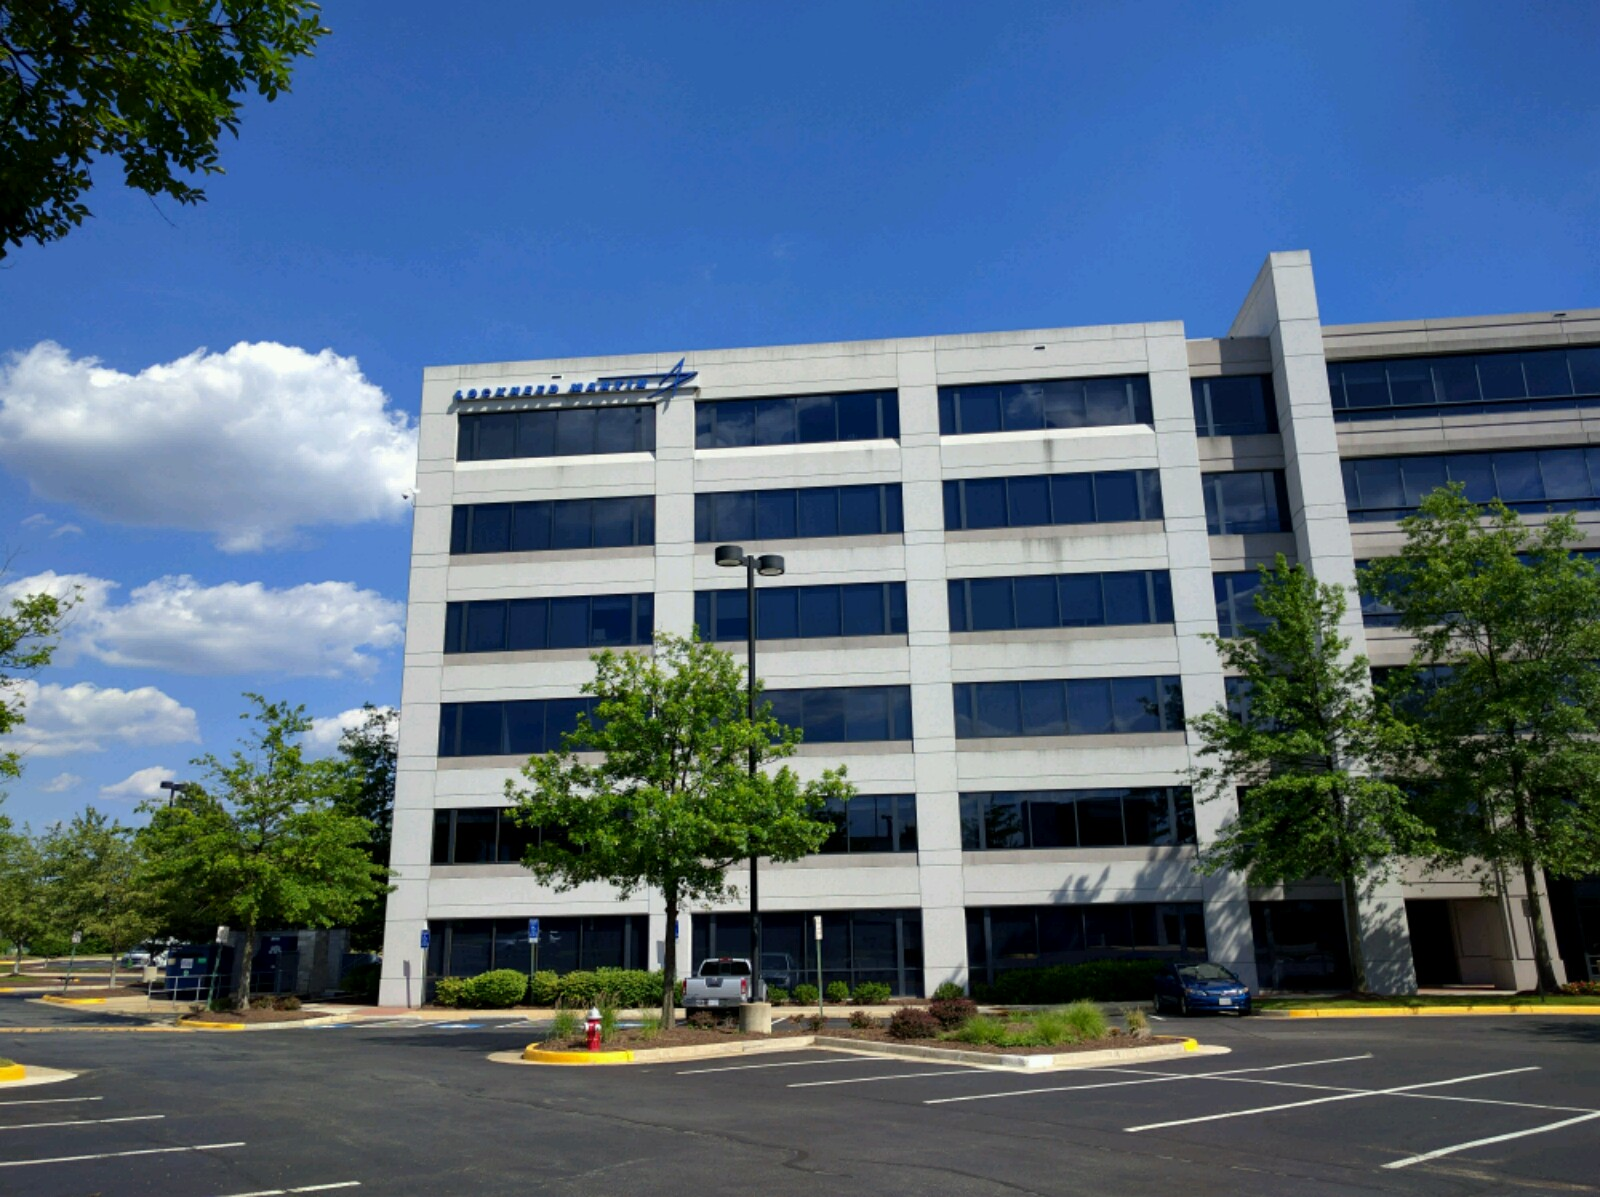 Lockheed Martin office in Herndon, Virginia.